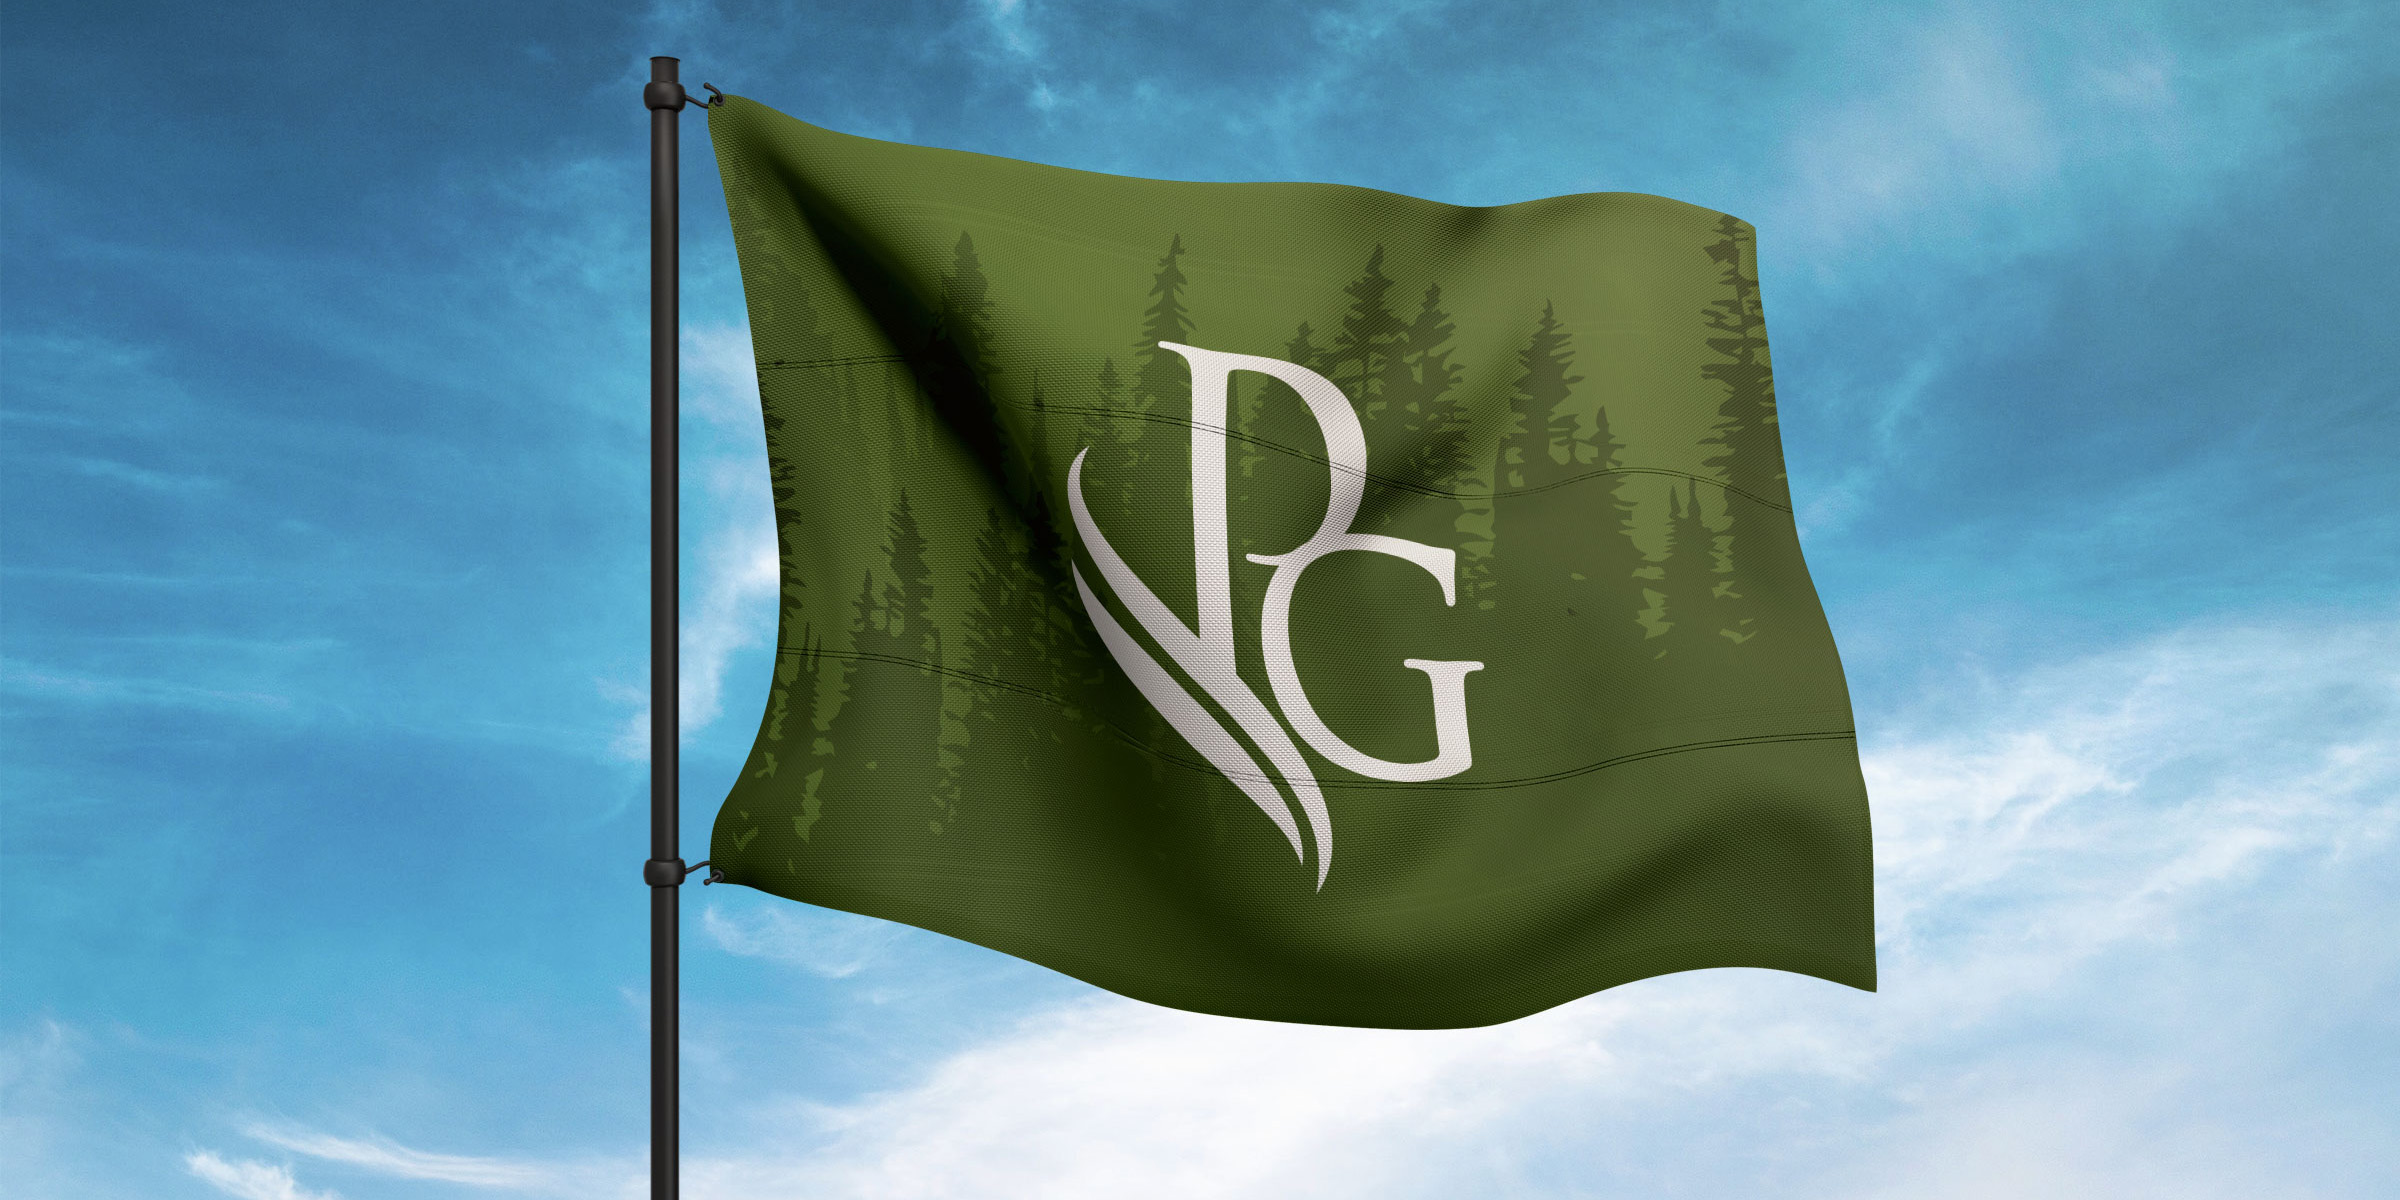 Priddis Greens logo on a green flag